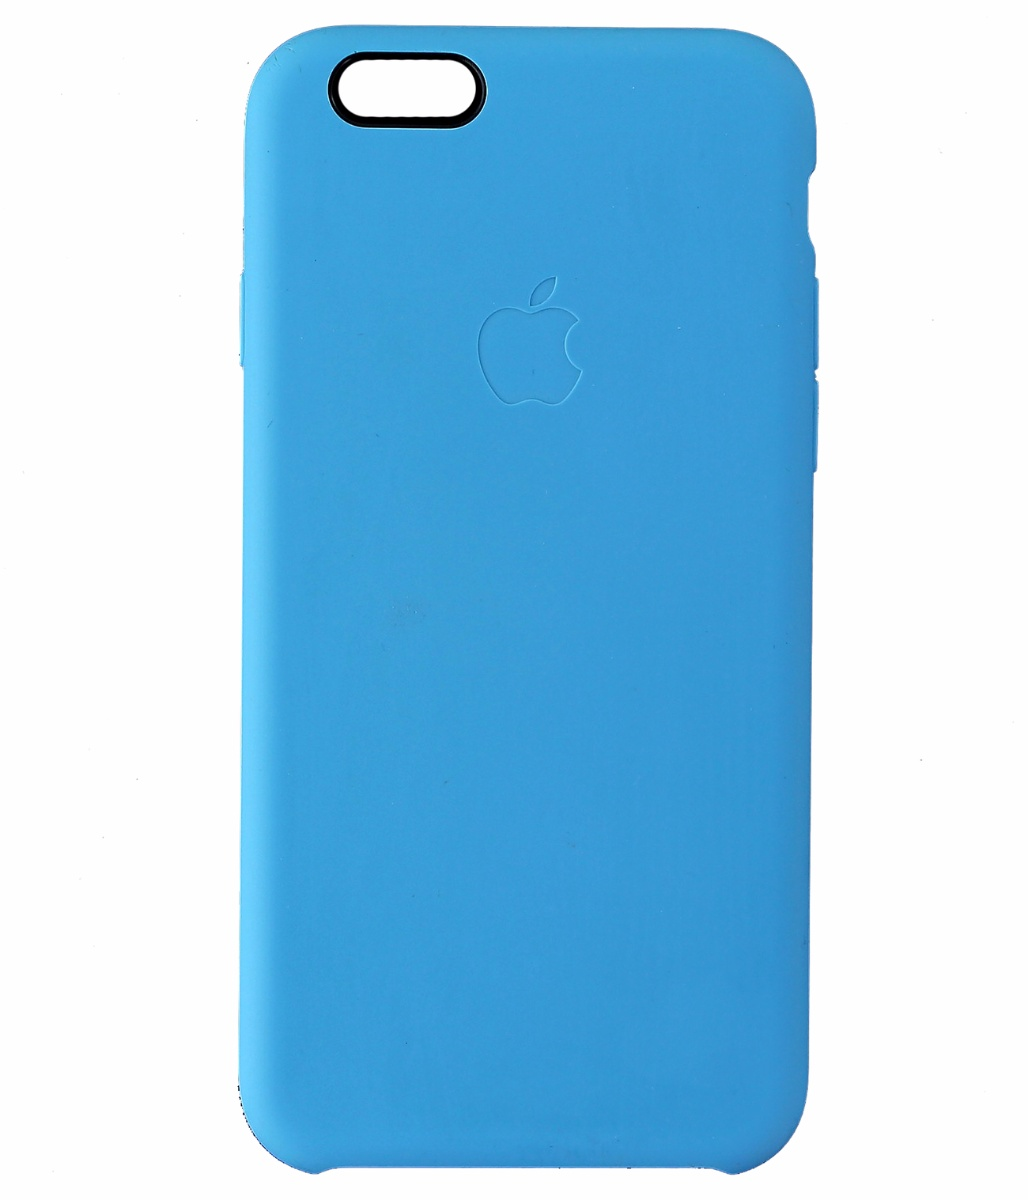 Apple iPhone 6 6s 4.7 Silicone Case Light Blue *MGQJ2ZM/A